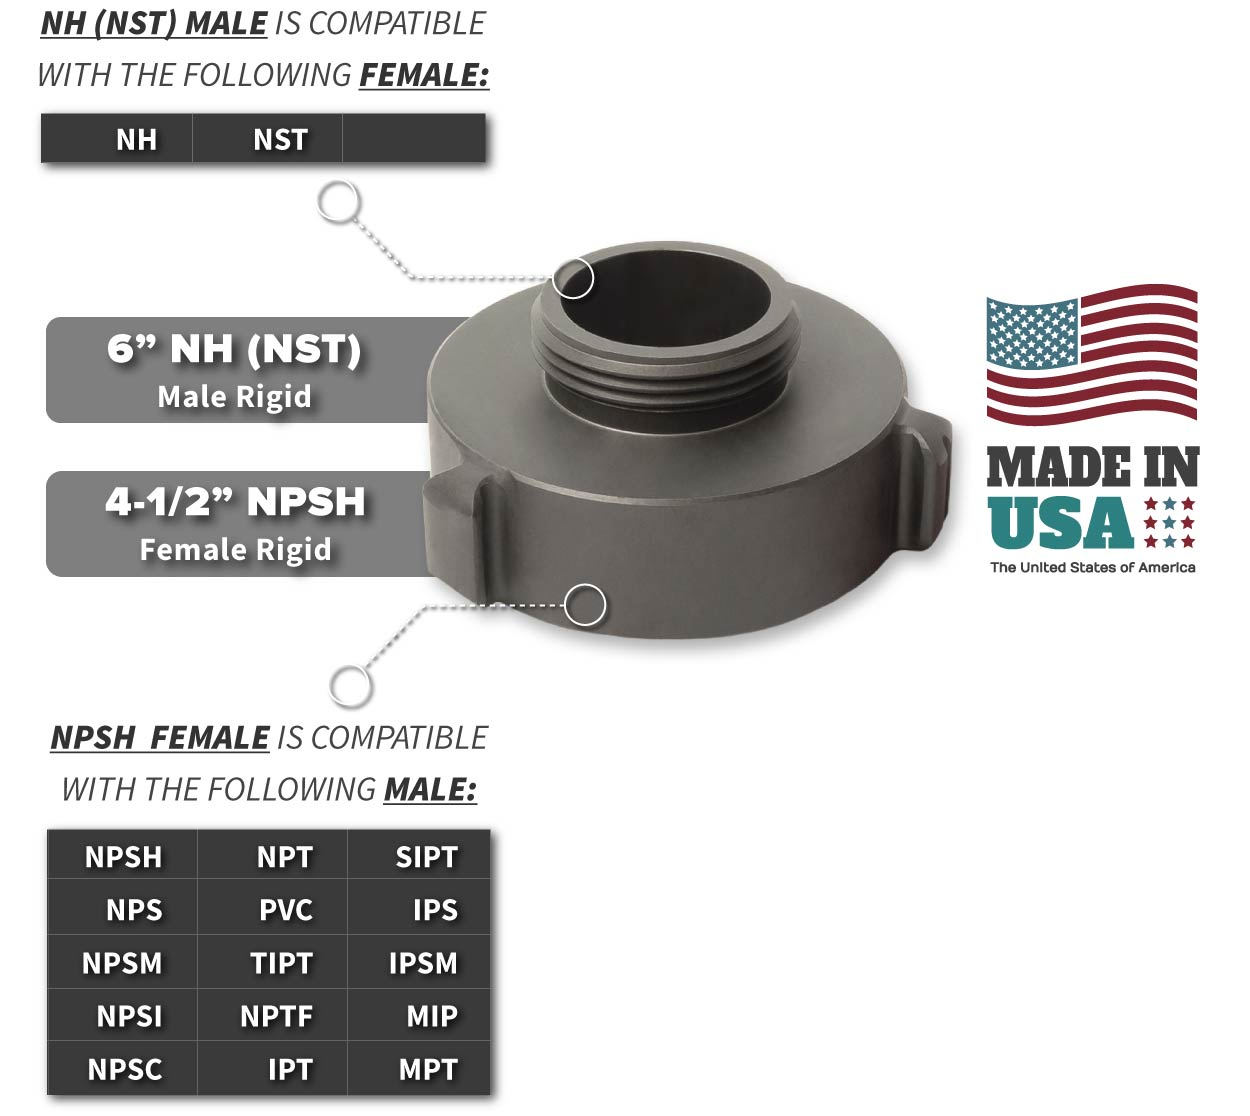 4.5 Inch NPSH Female x 6 Inch NH-NST Male Compatibility Thread Chart